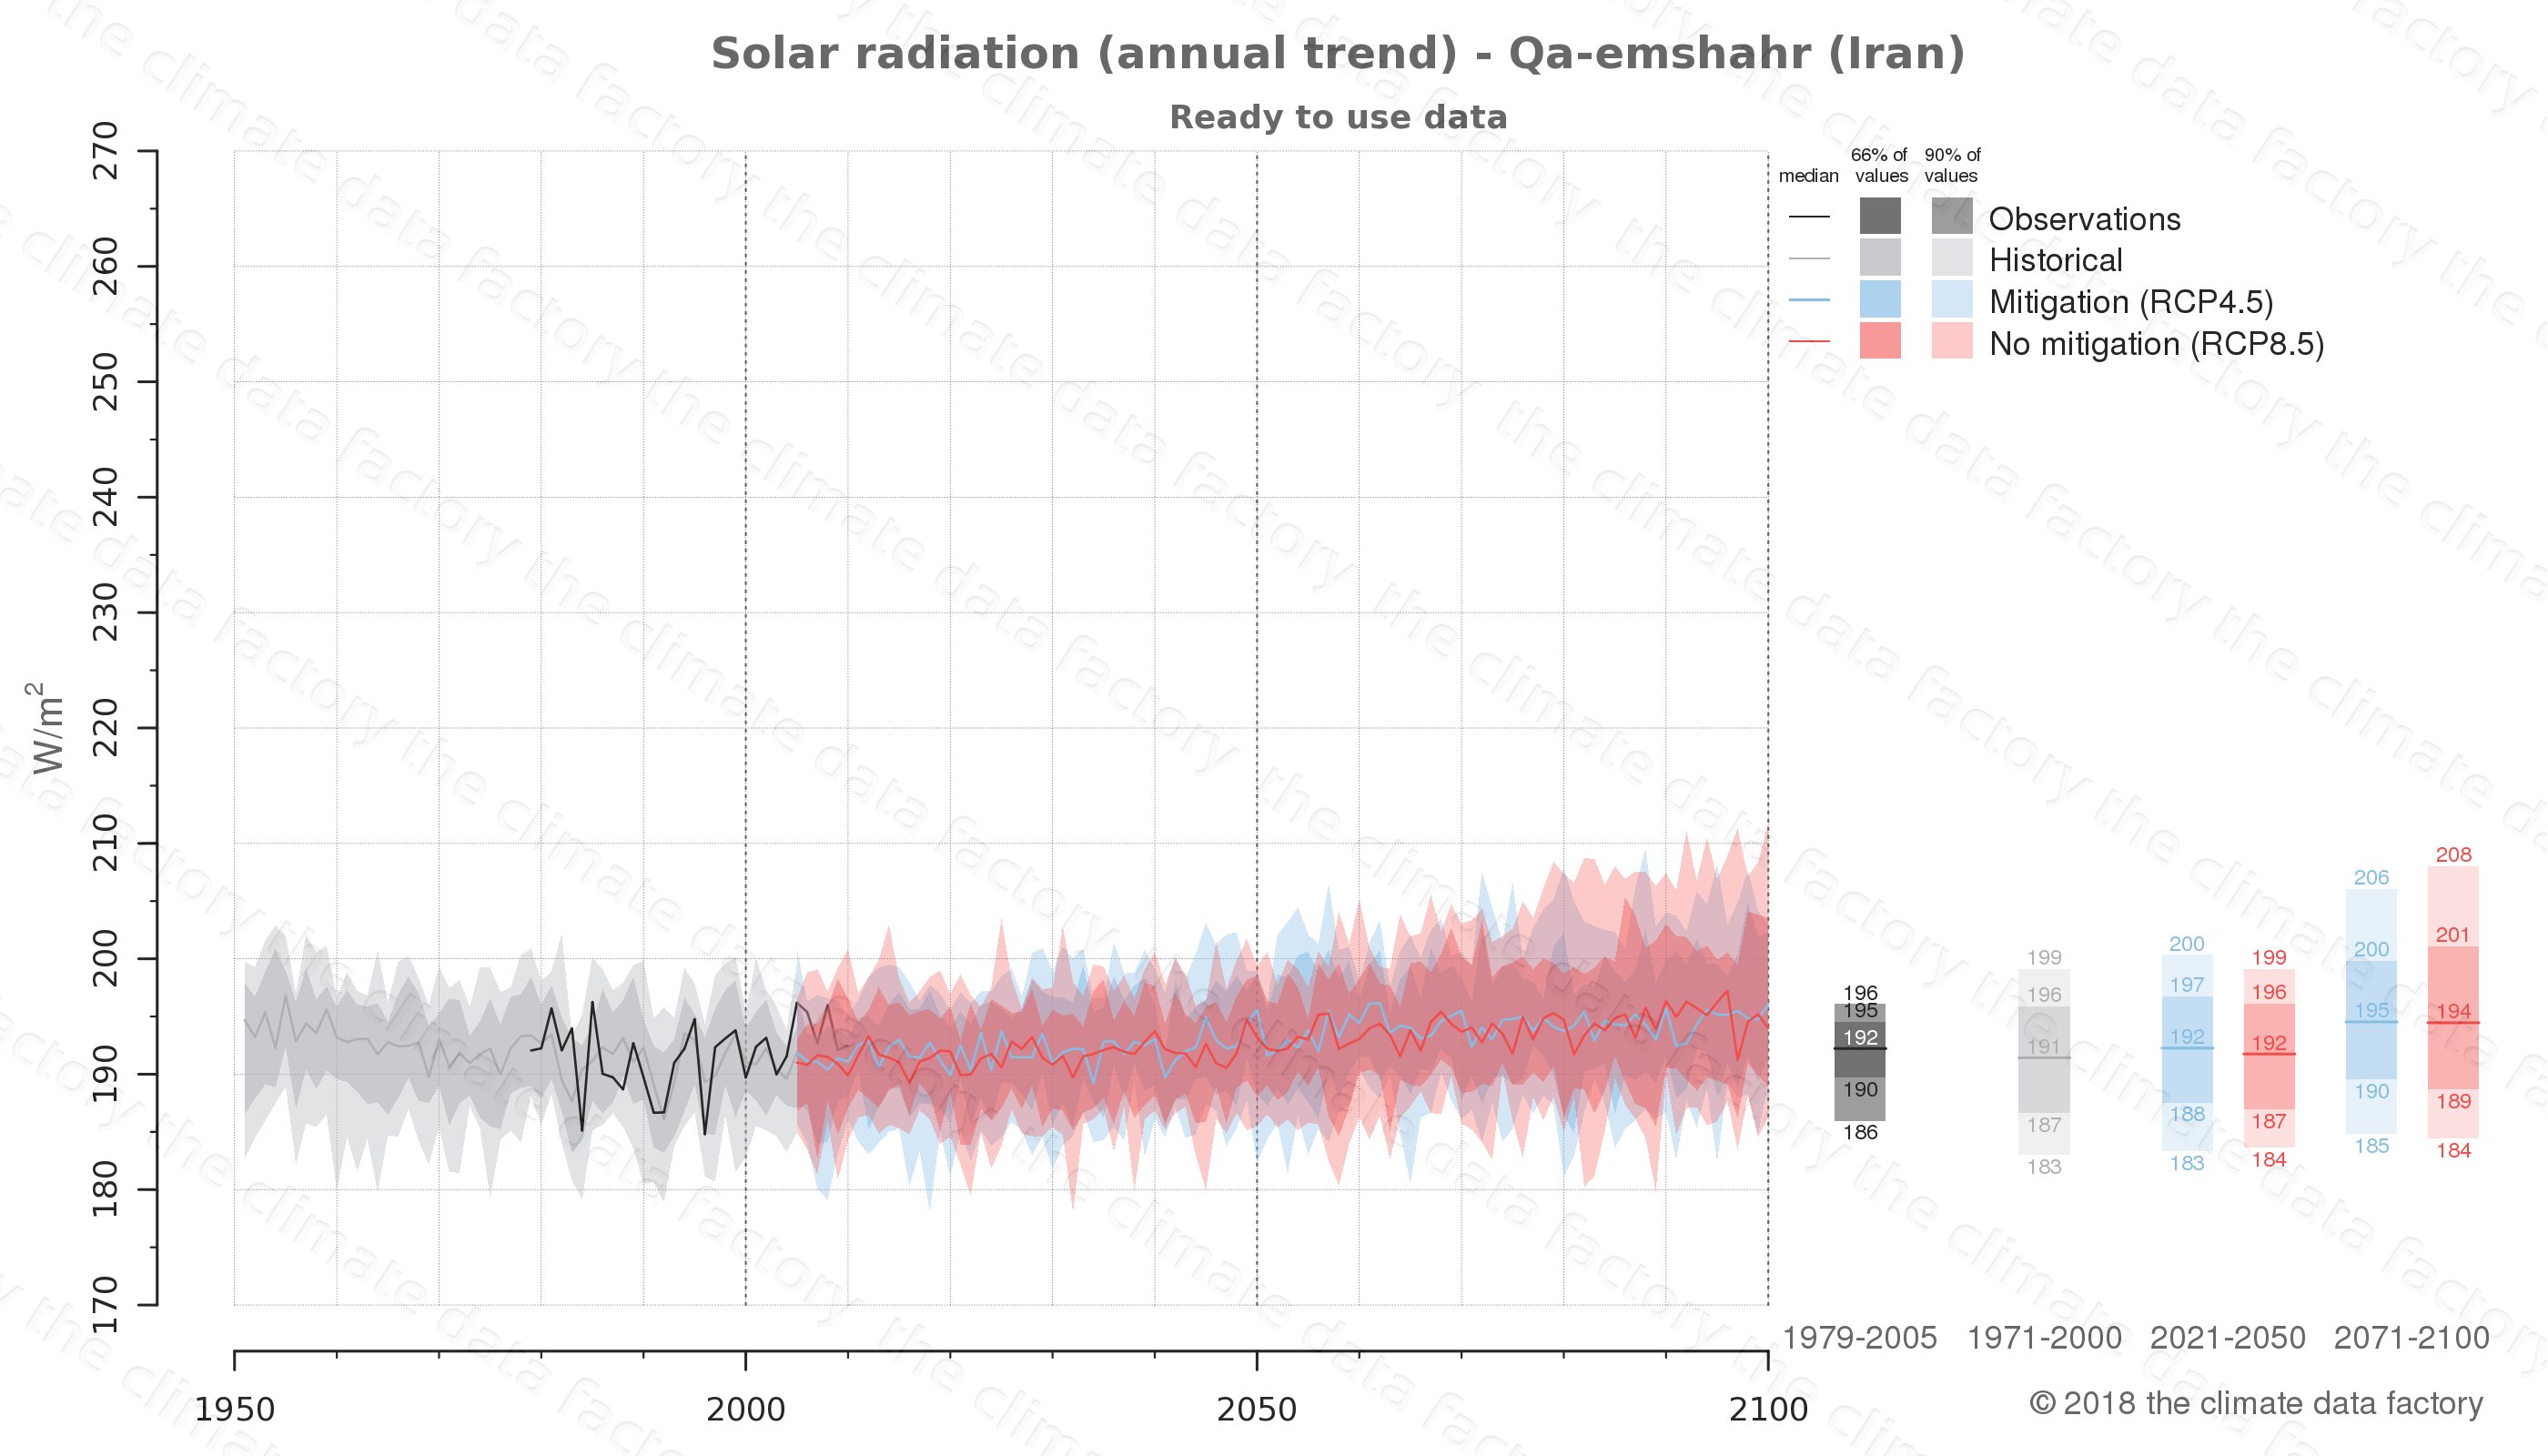 climate change data policy adaptation climate graph city data solar-radiation qa-emshahr iran